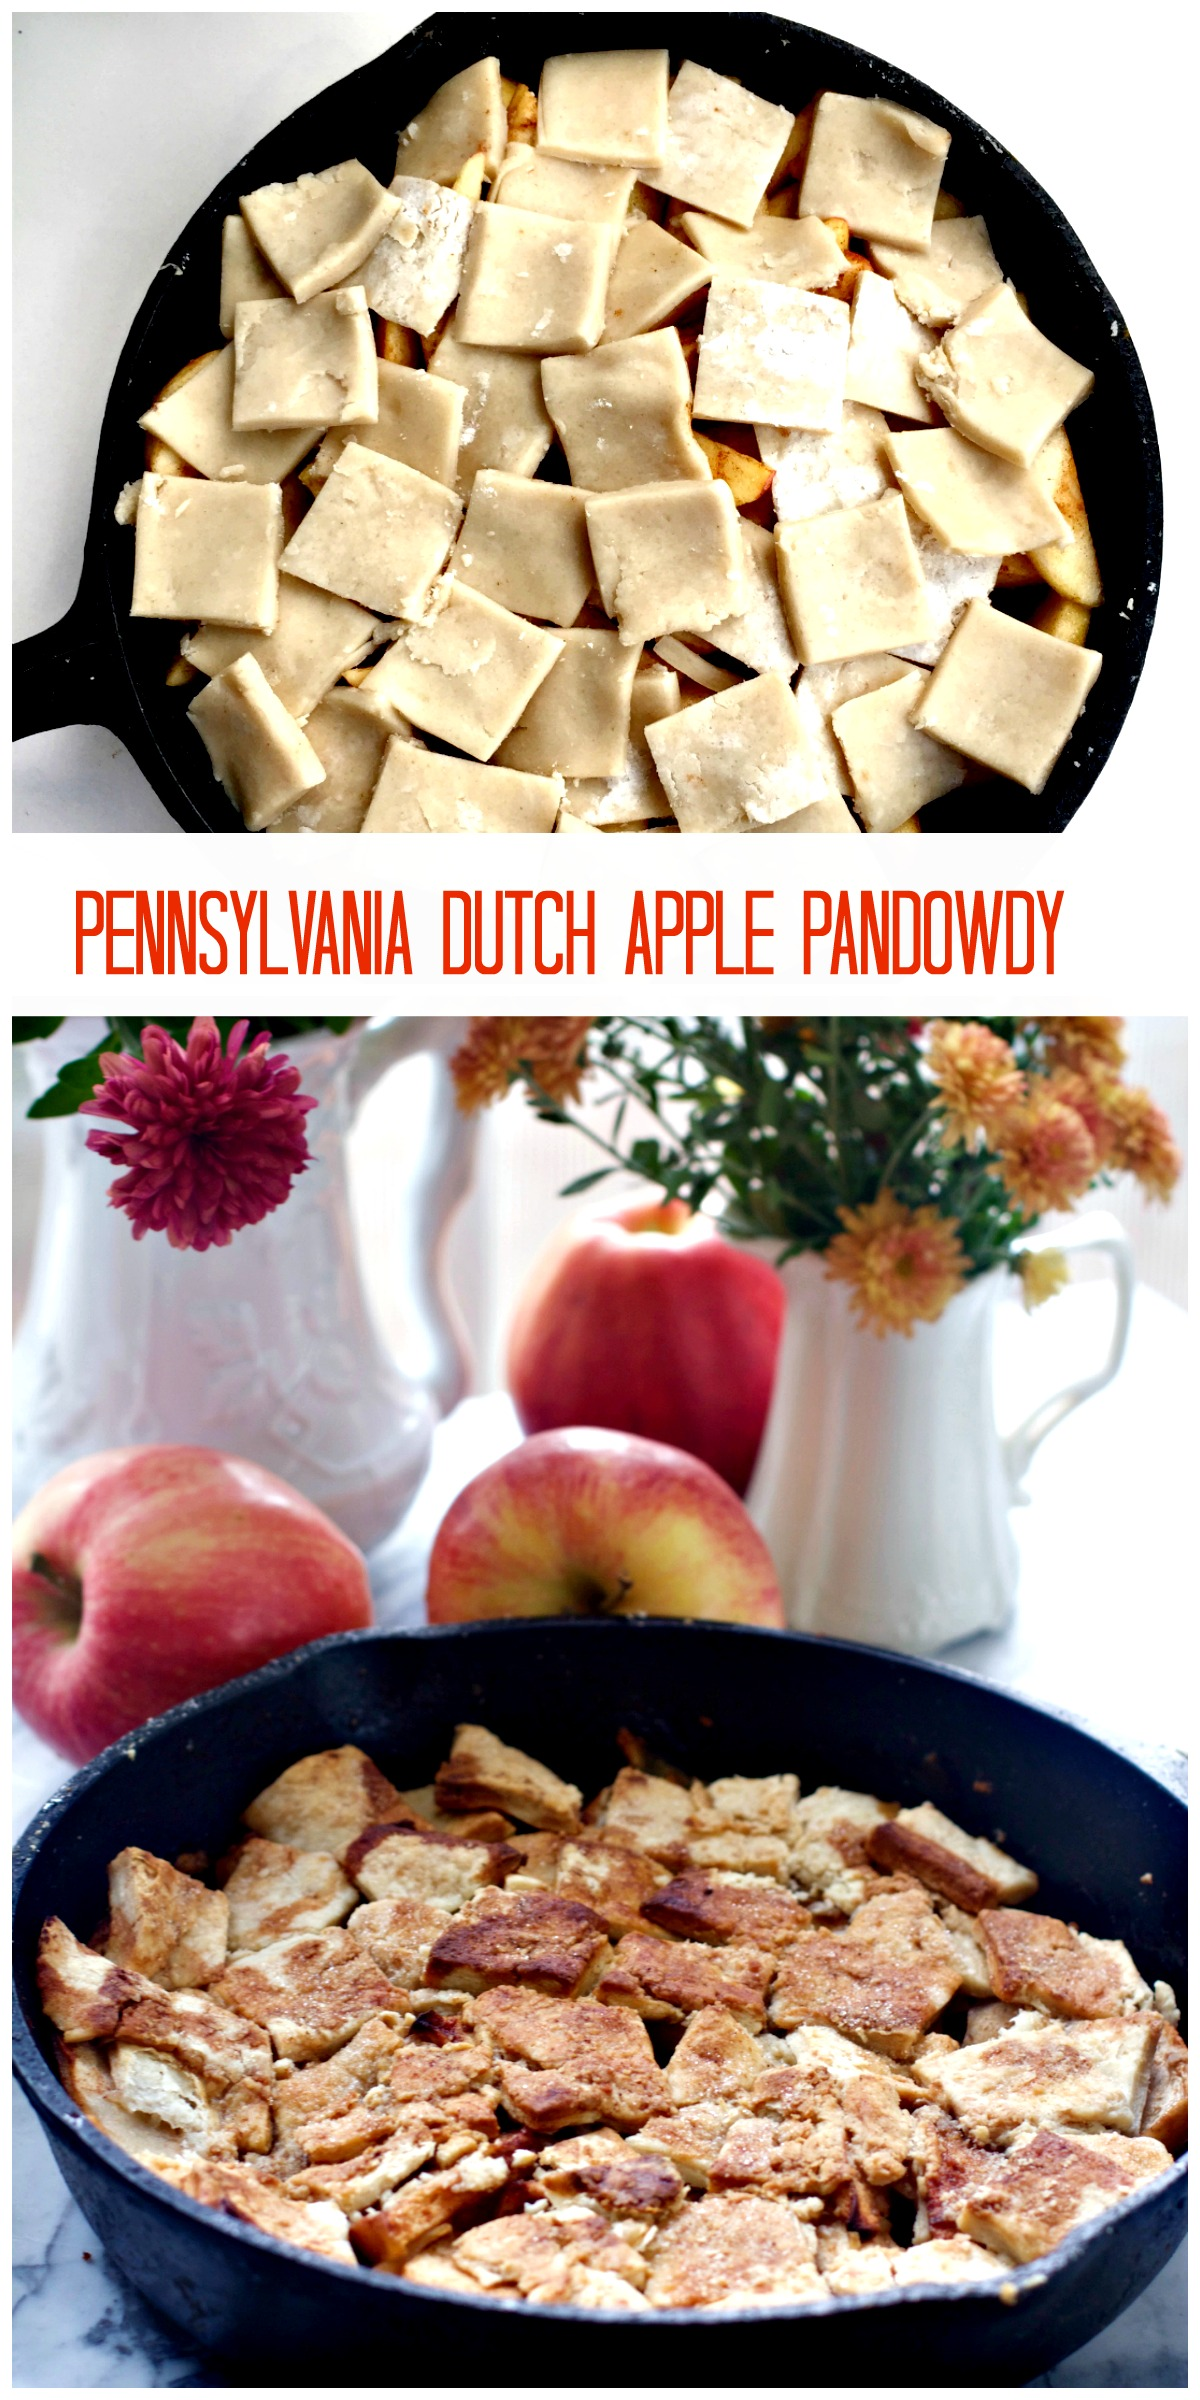 Amish Apple Pandowdy Dessert by Angela Roberts